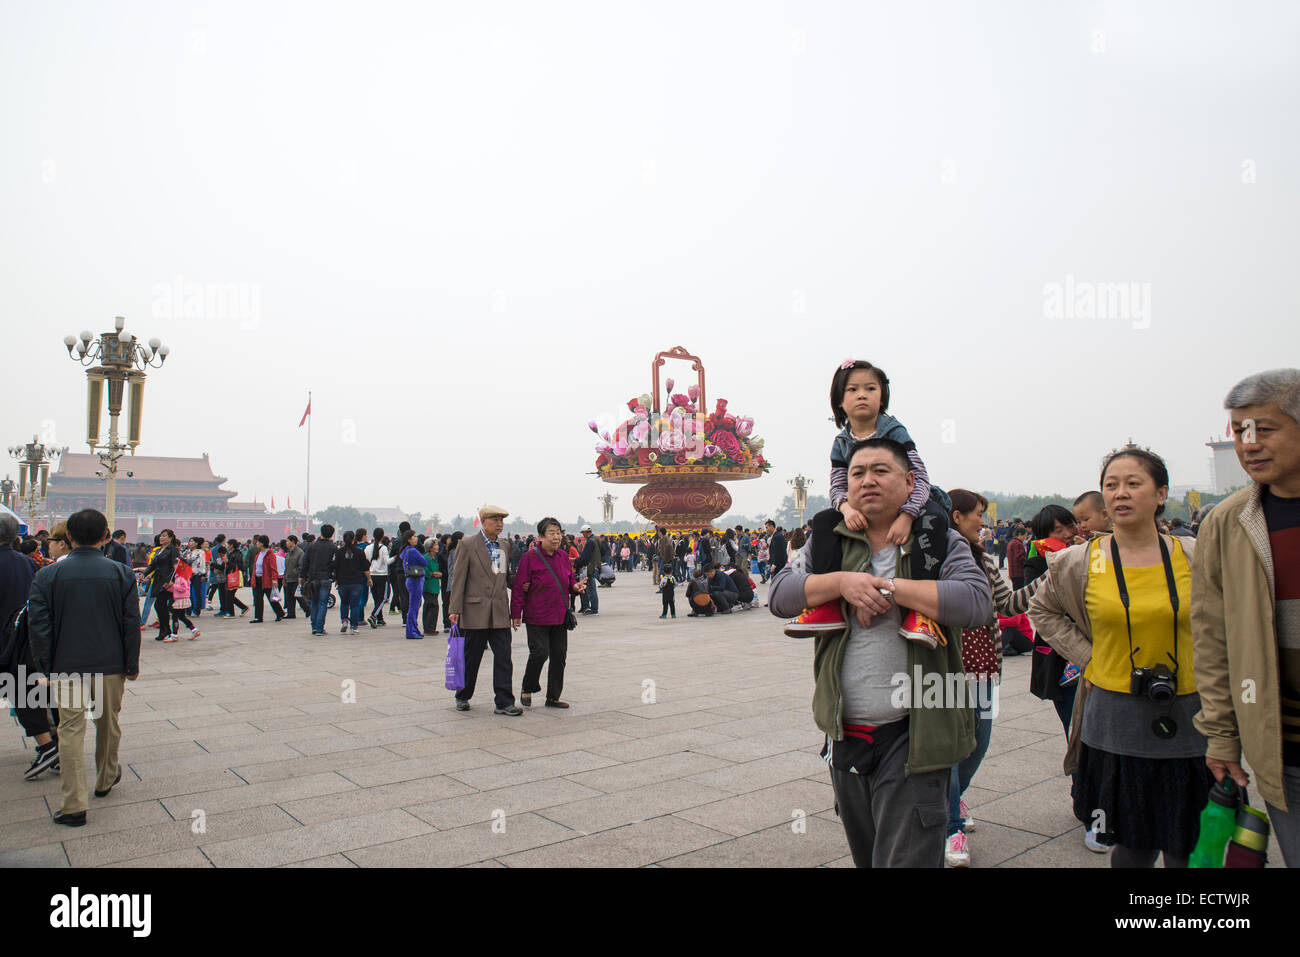 Tiananmen Square during public holiday, Beijing, China - Stock Image